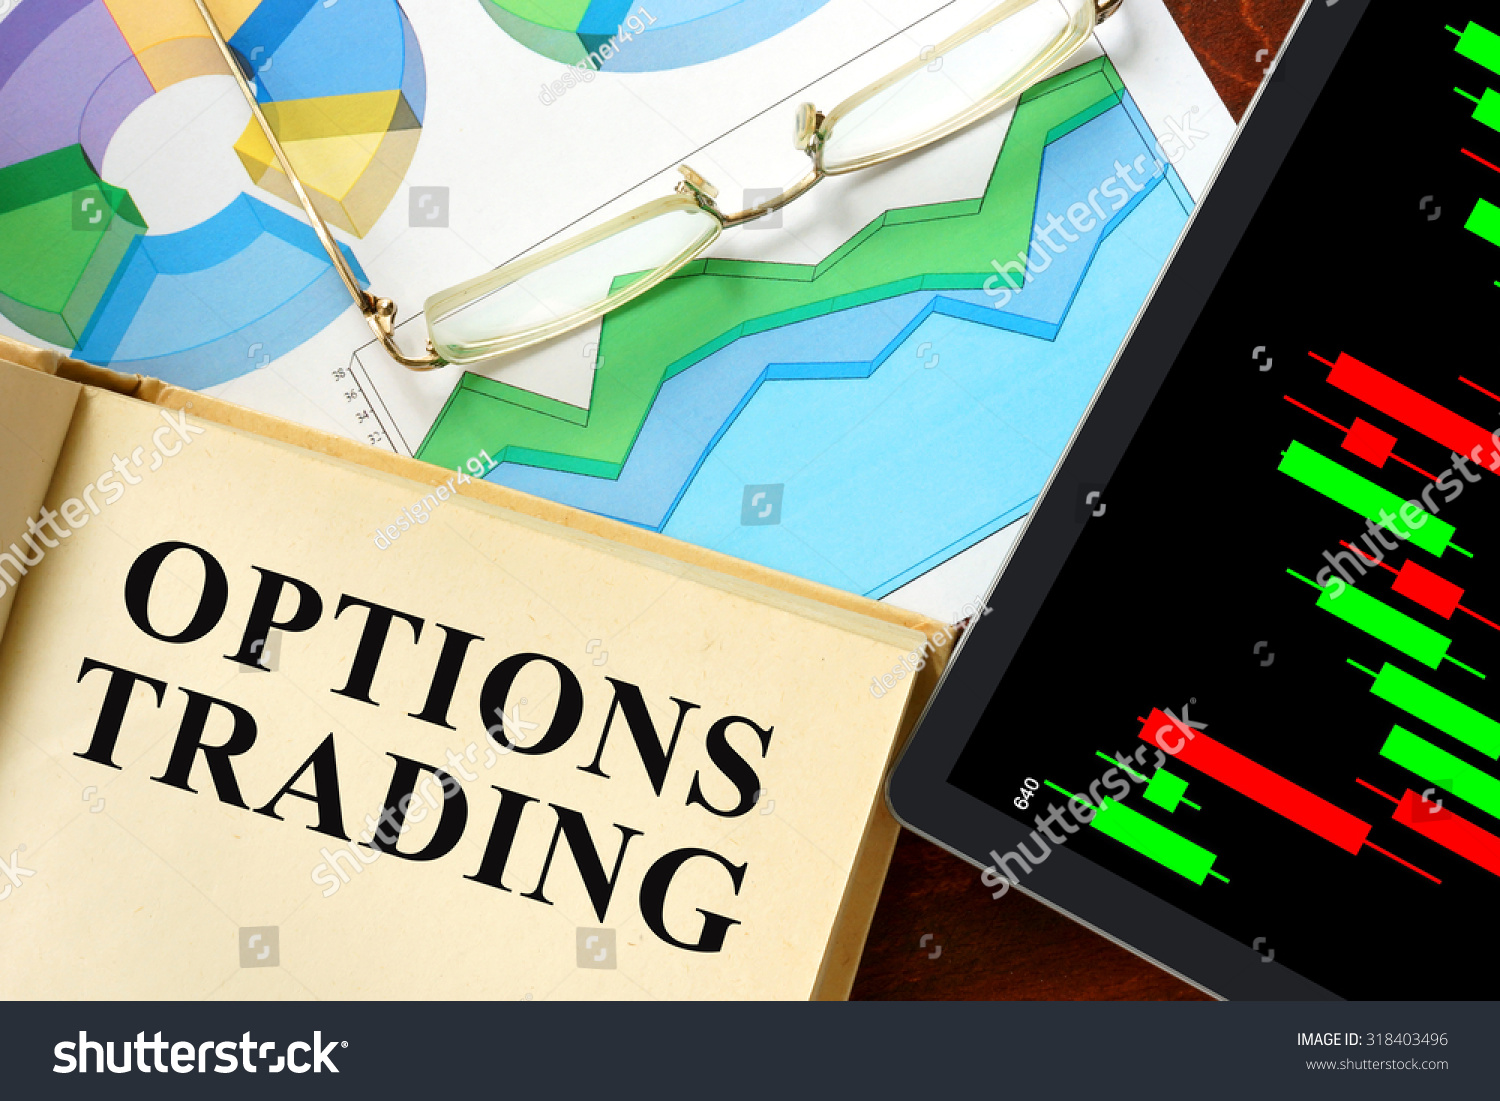 Day trading options book